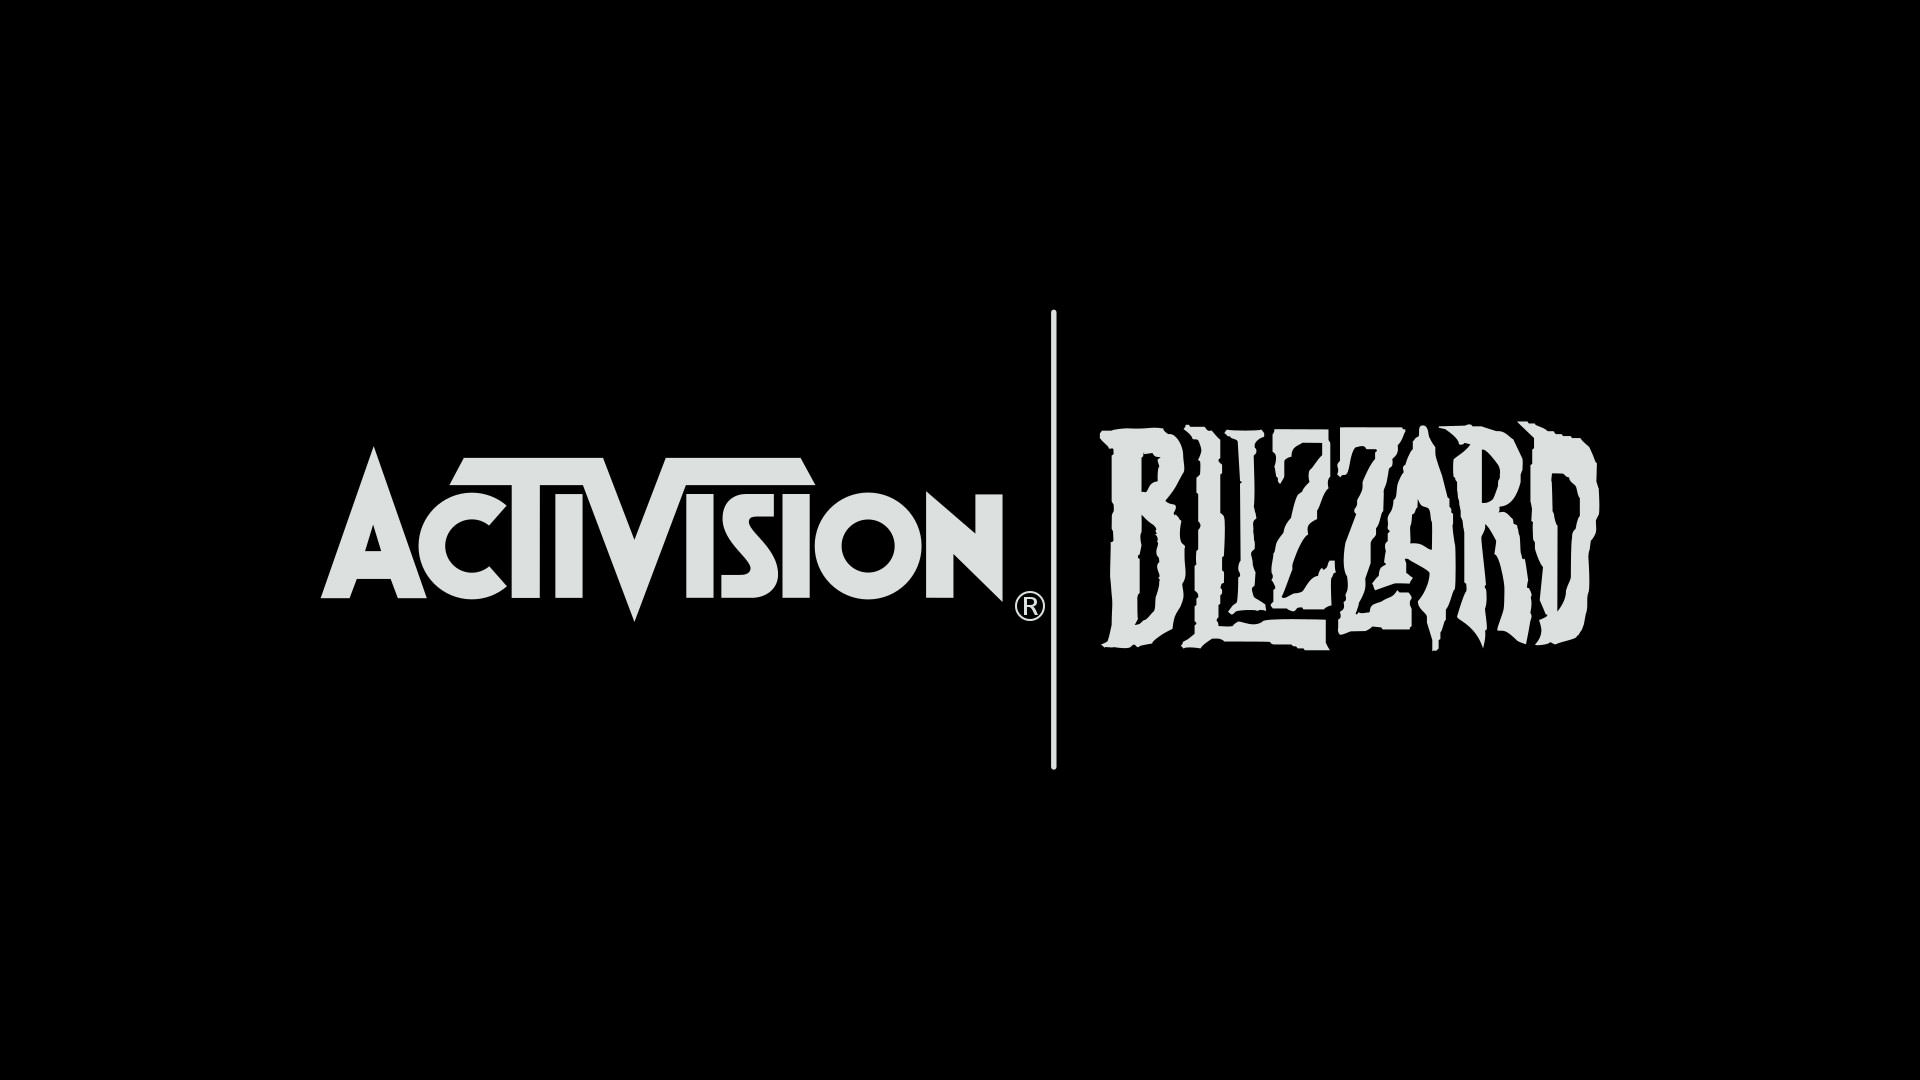 Activision Blizzard the target of multiple lawsuits against after Bungie split